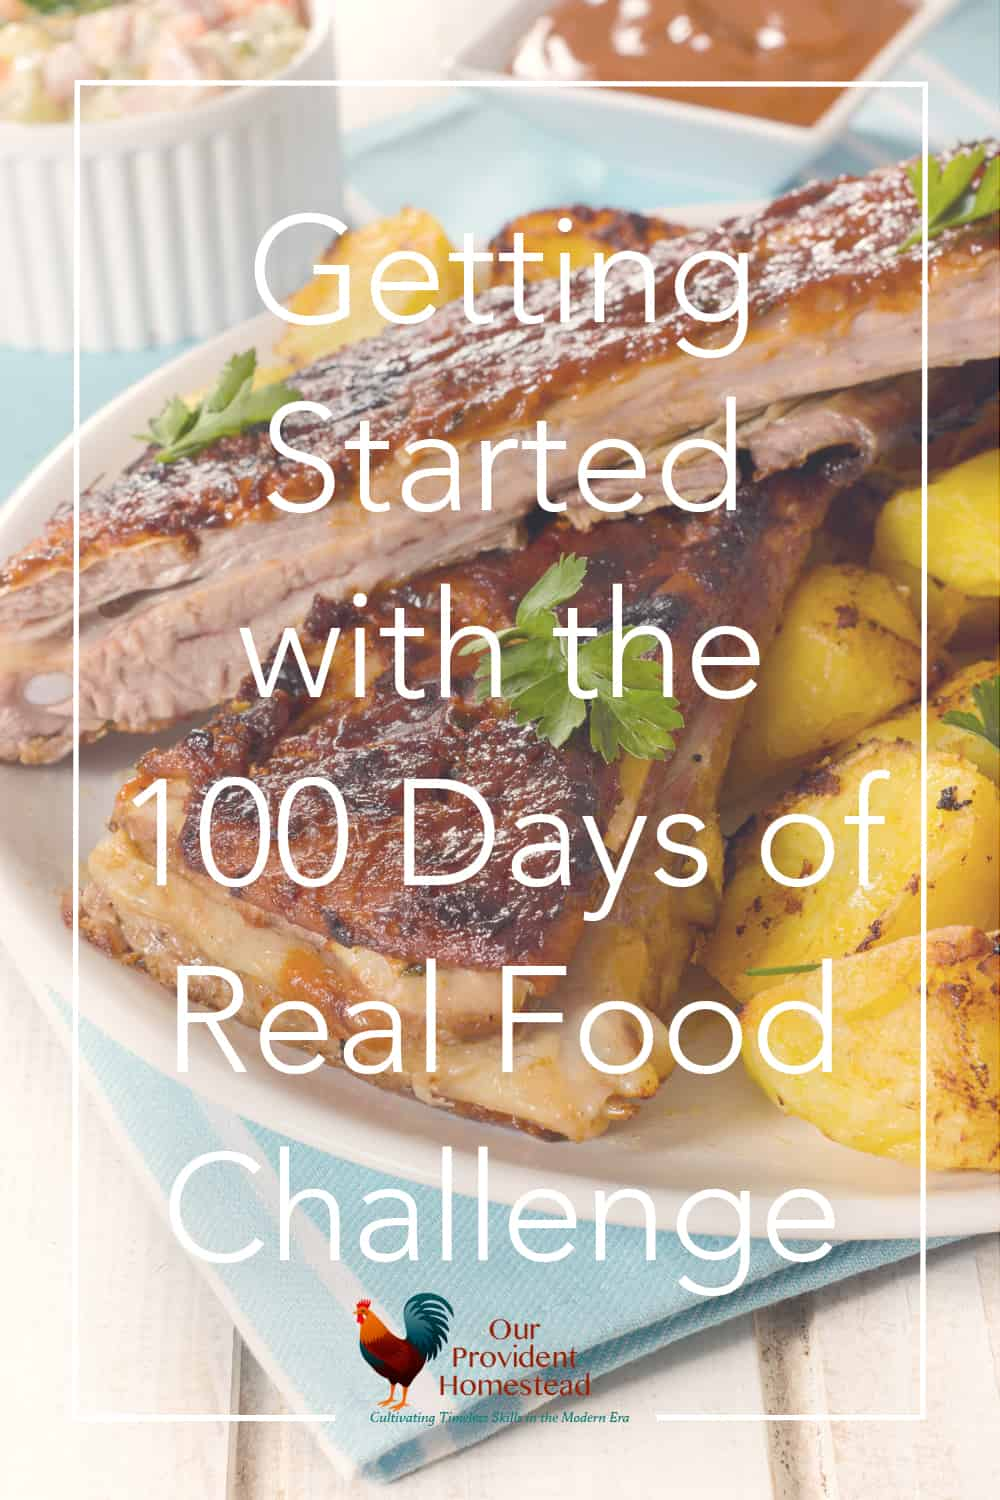 Are you ready to convert to a real food life? Click on this pin to get started with the 100 days of real food challenge today! #realfood #health #healthyeating #100daysofrealfood